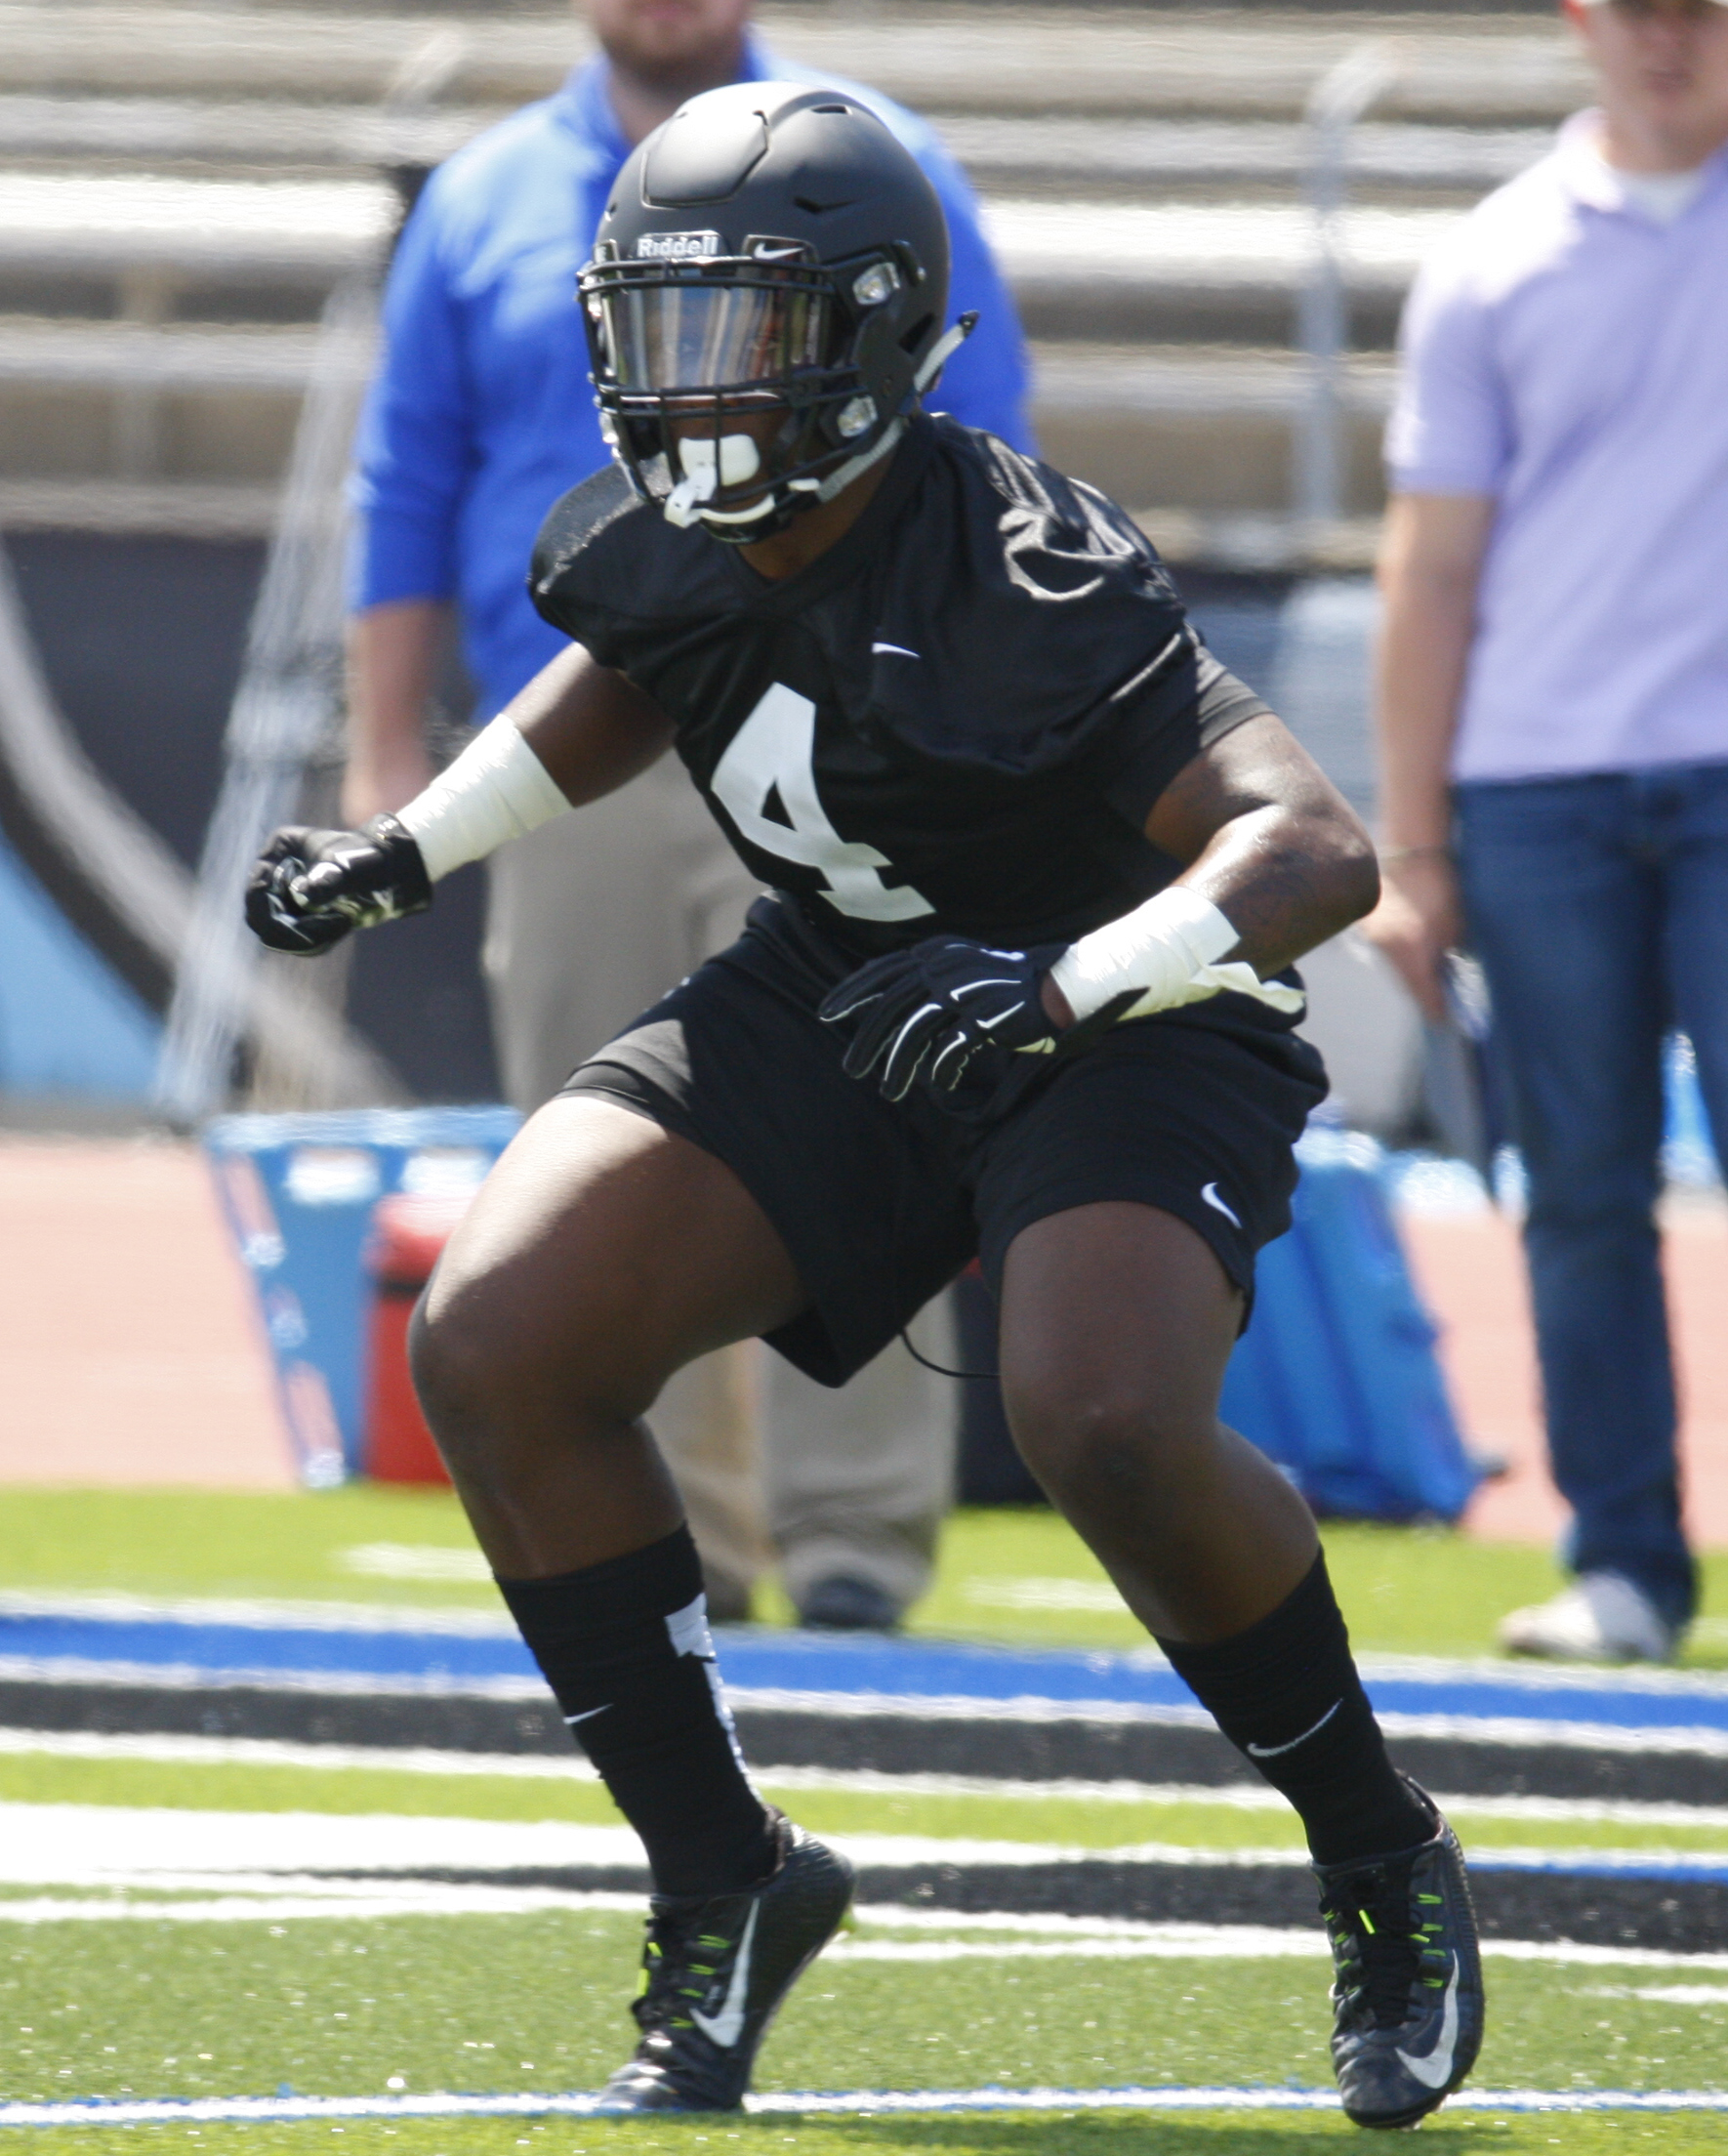 University at Buffalo player Khaalil Hodge during practice on Sunday, Aug. 7, 2016. (Harry Scull Jr./Buffalo News)